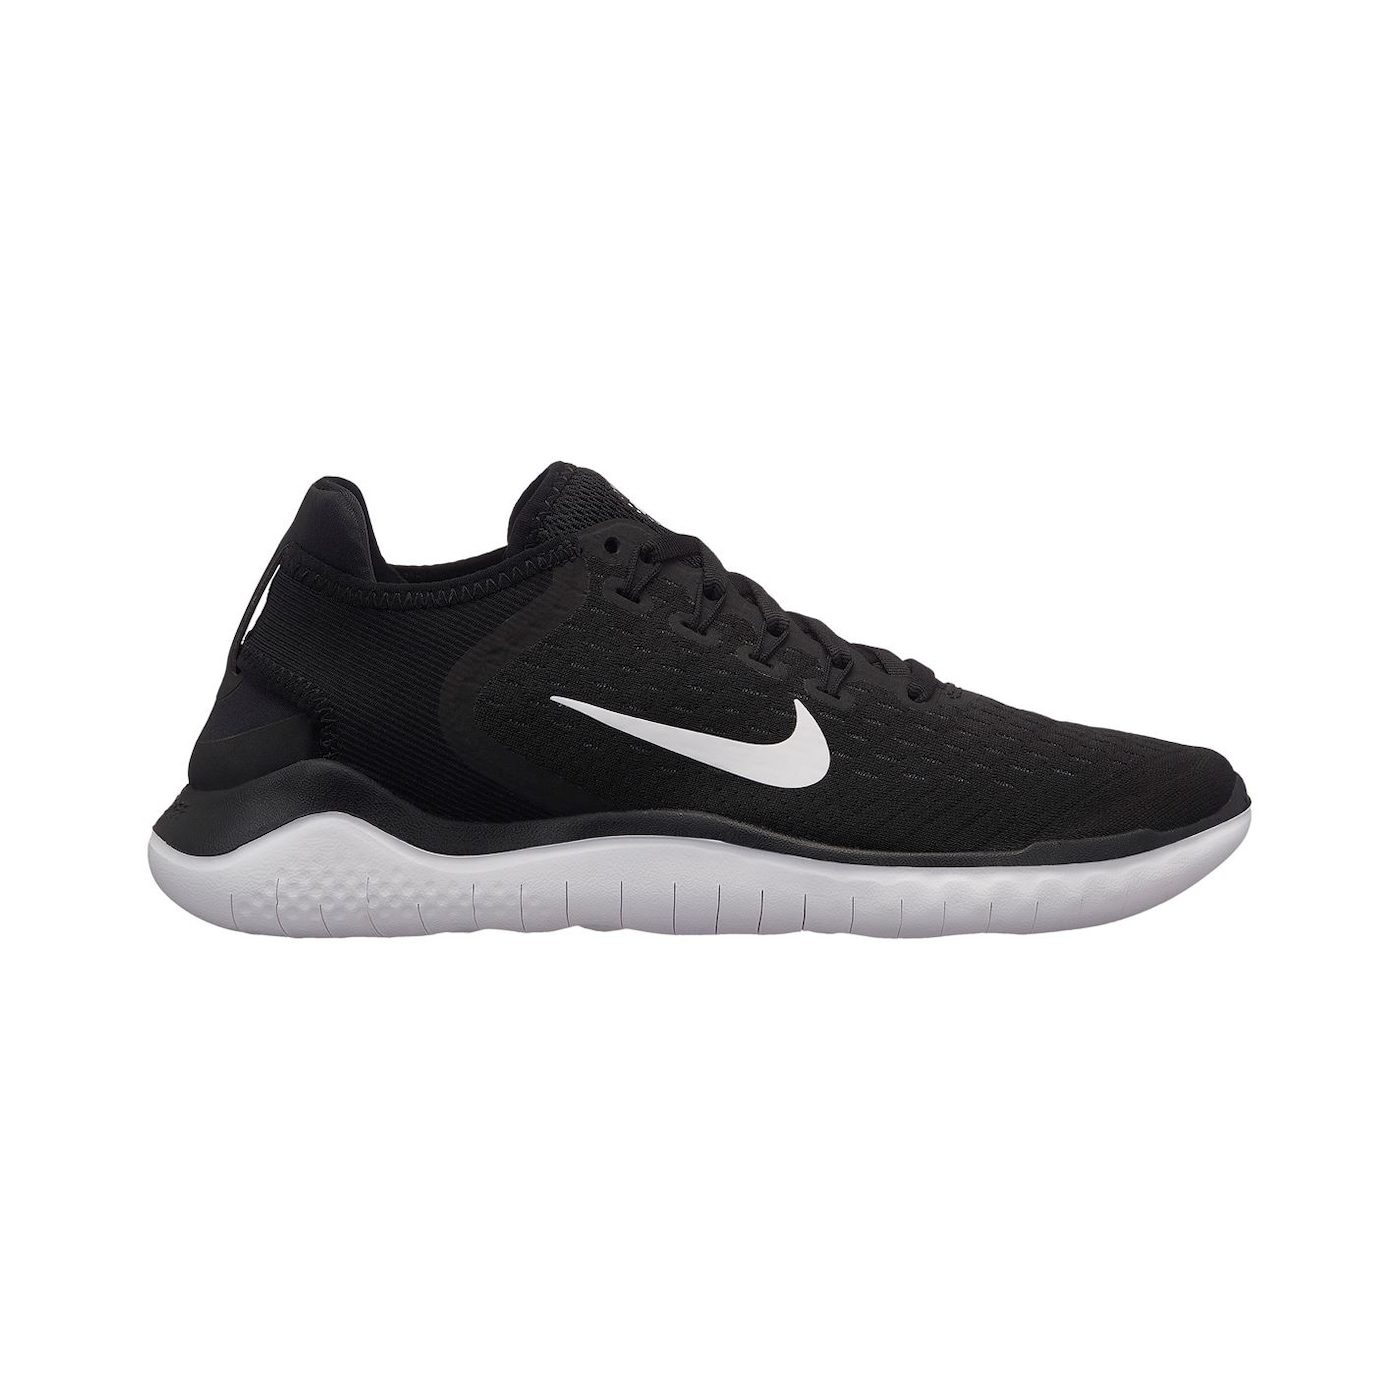 Nike Free Run 2018 Ladies Running Shoes